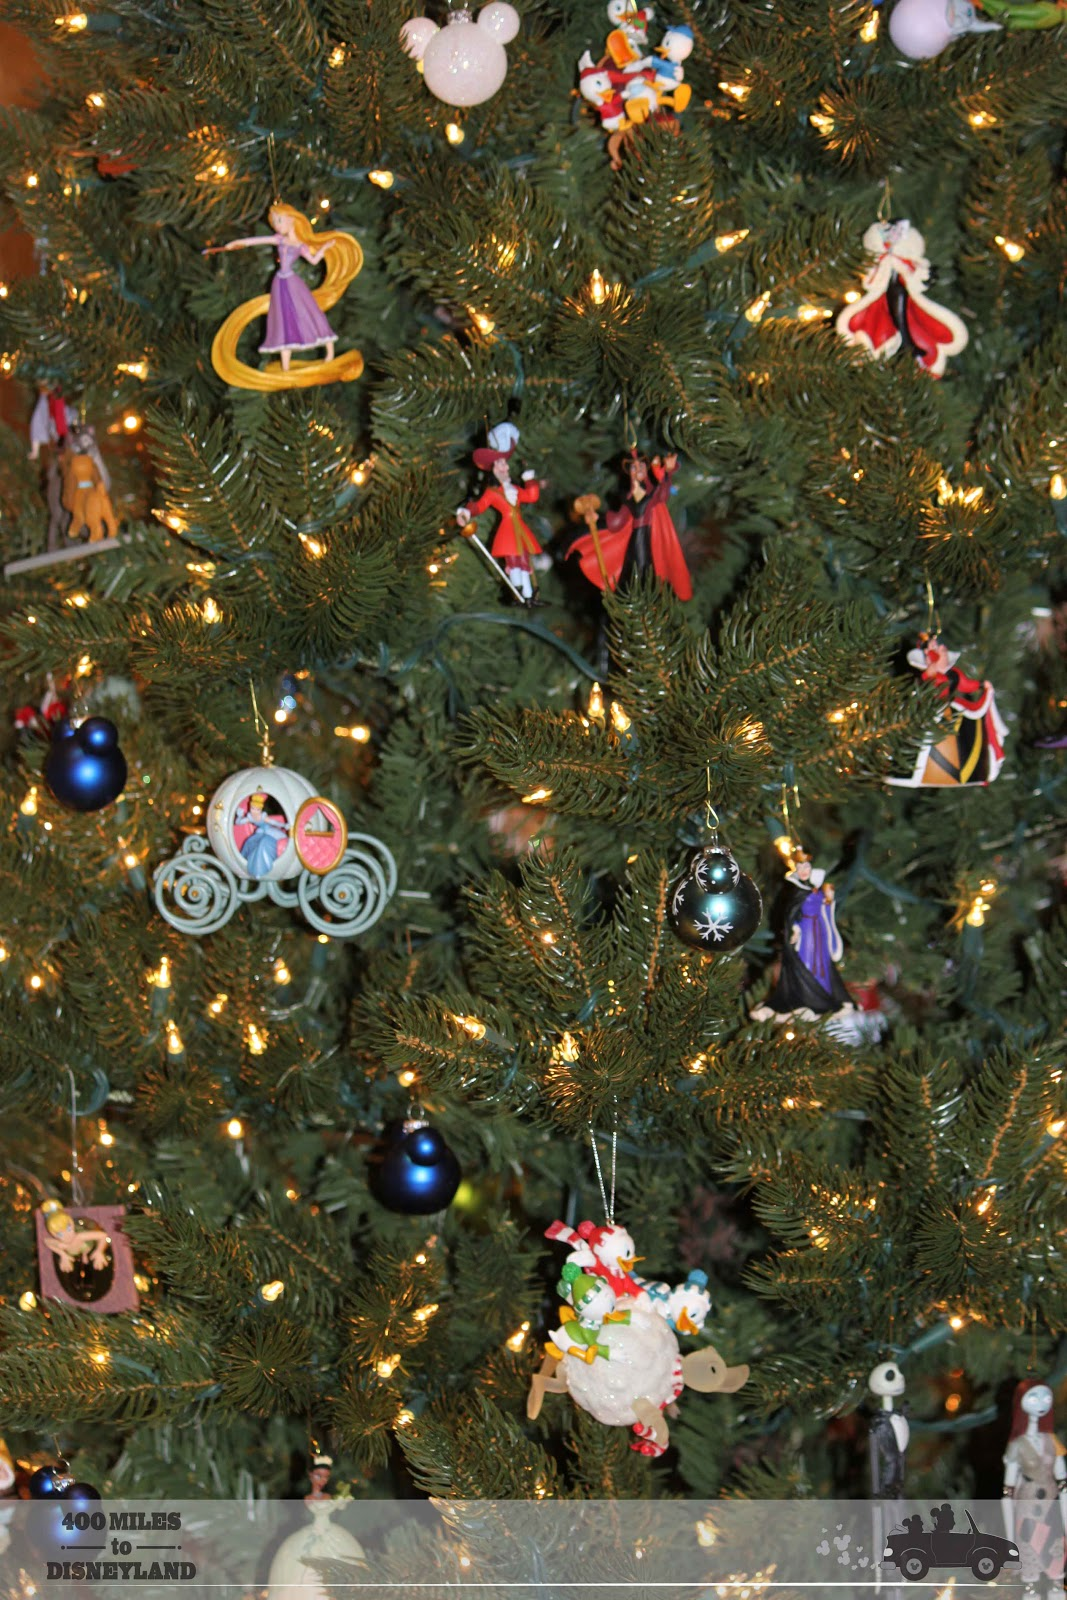 Excellent 400 Miles To Disneyland Disney Holiday Decorations At Home Easy Diy Christmas Decorations Tissureus